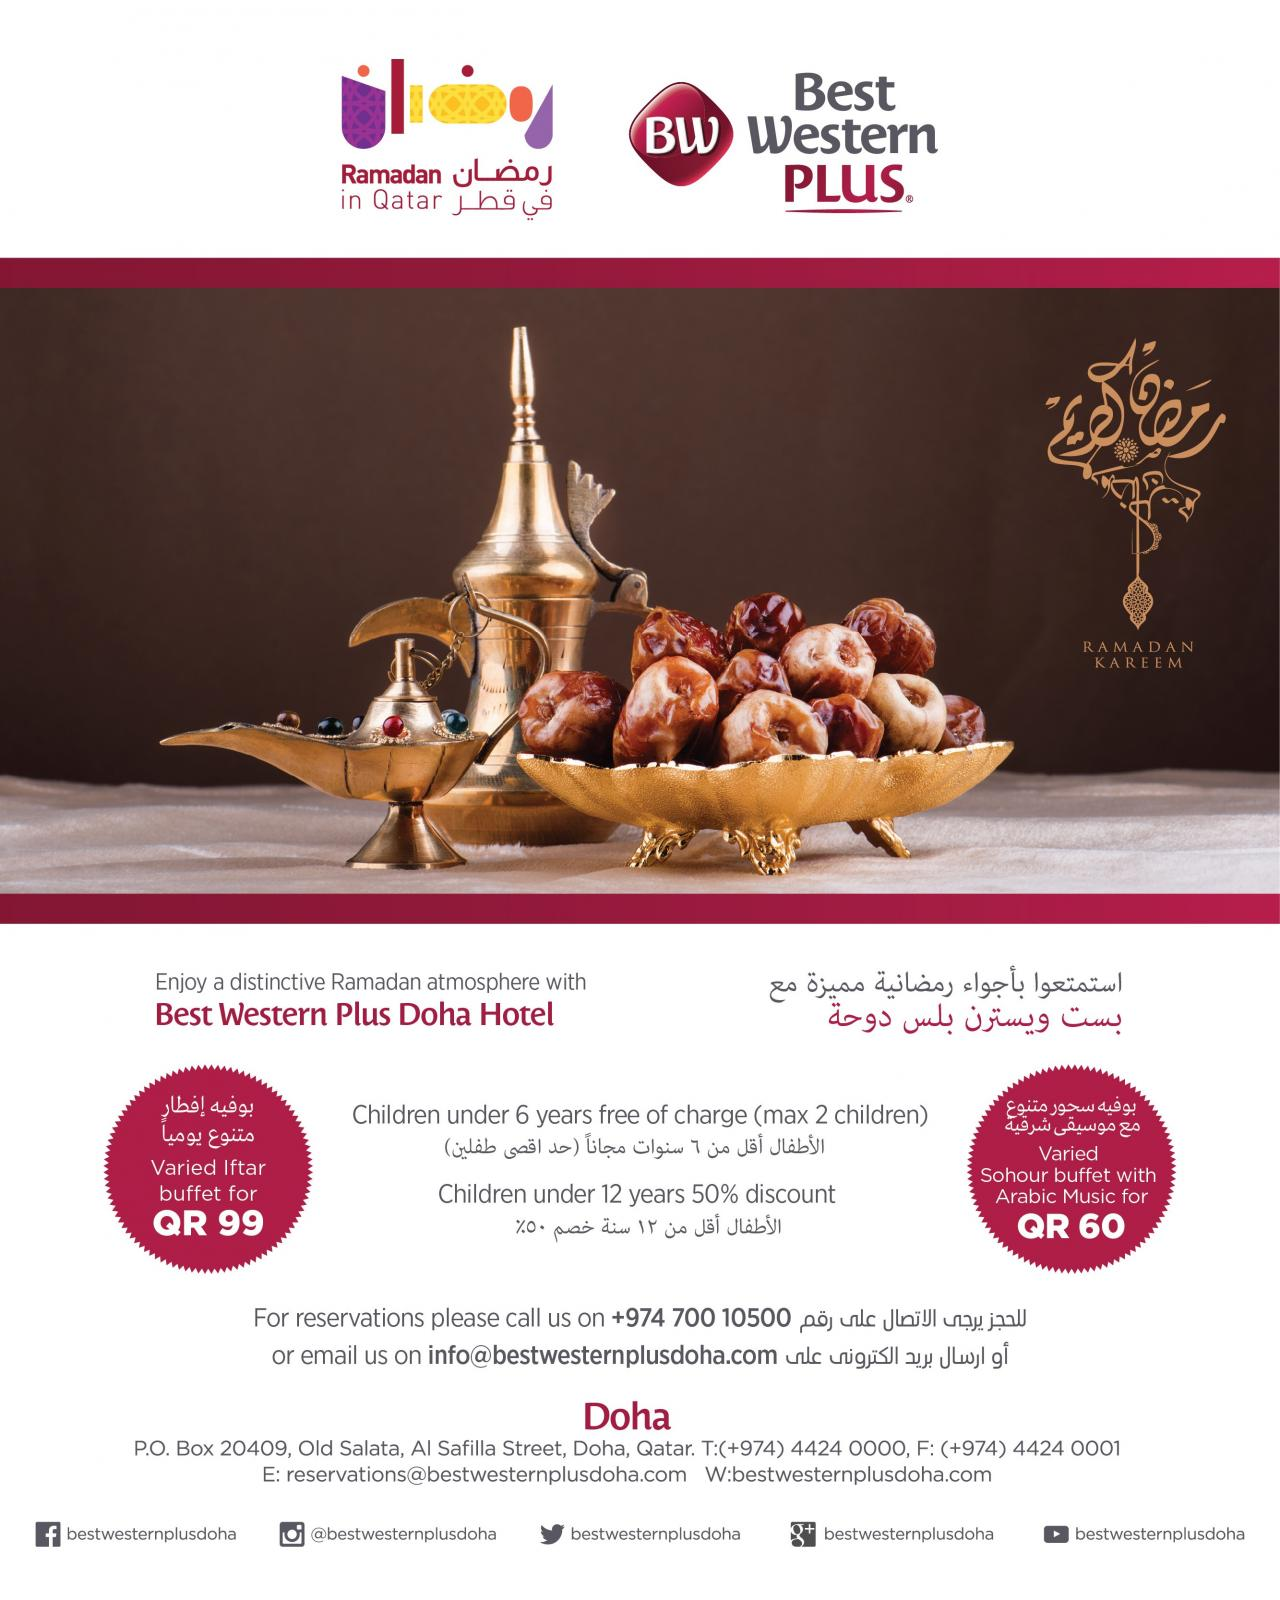 Welcome to the BEST WESTERN PLUS Doha